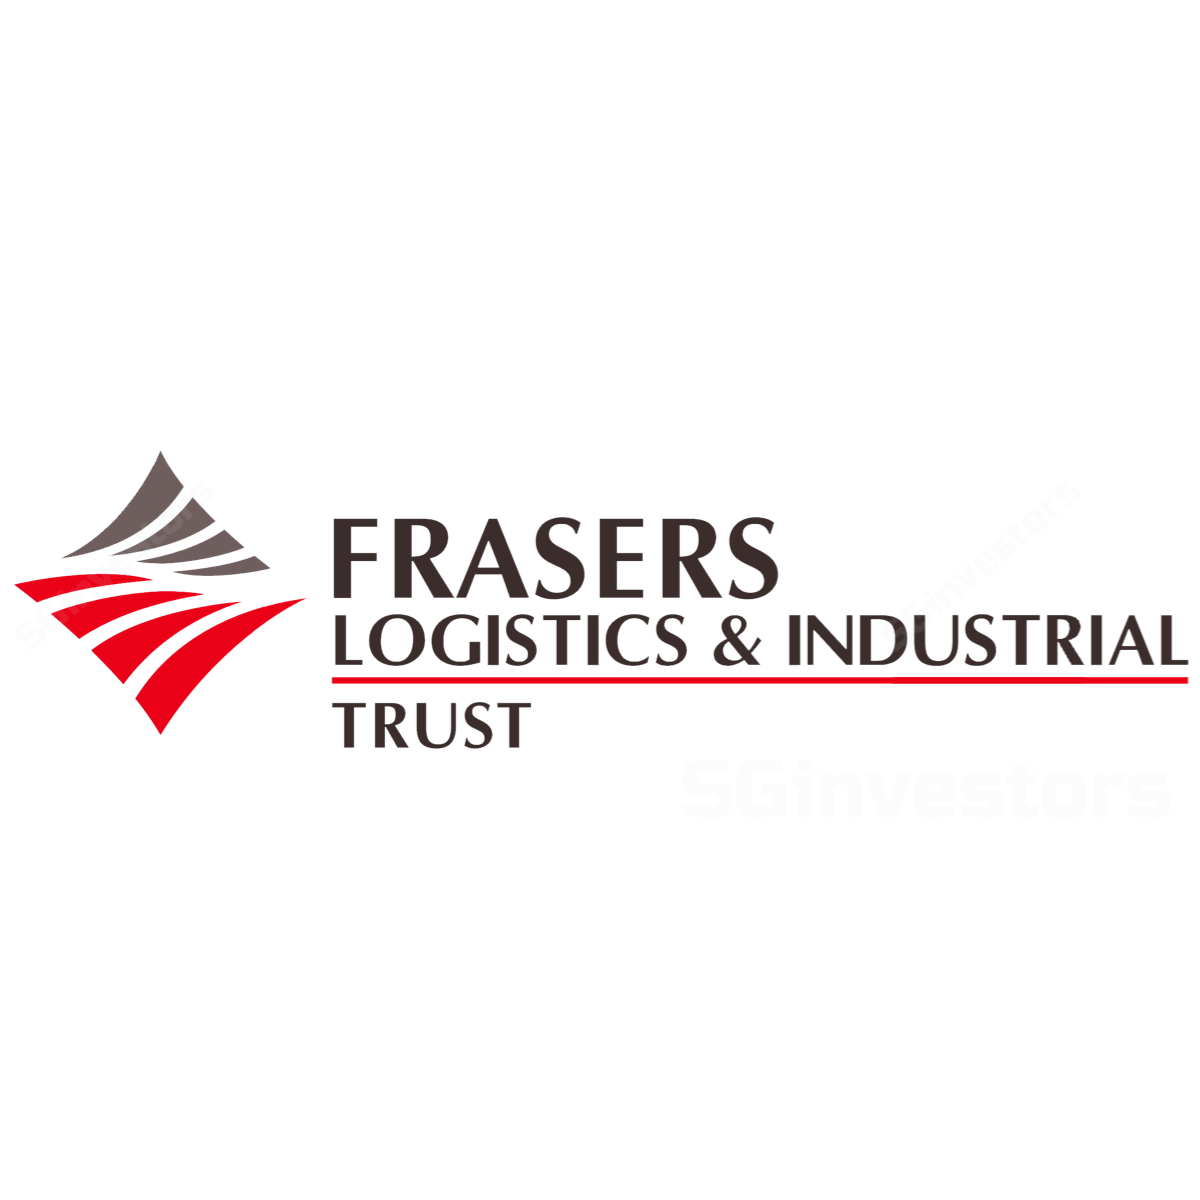 Frasers Logistics & Industrial Trust - CIMB Research 2018-04-20: Bratwurst And Shiraz Are An Umami Combination